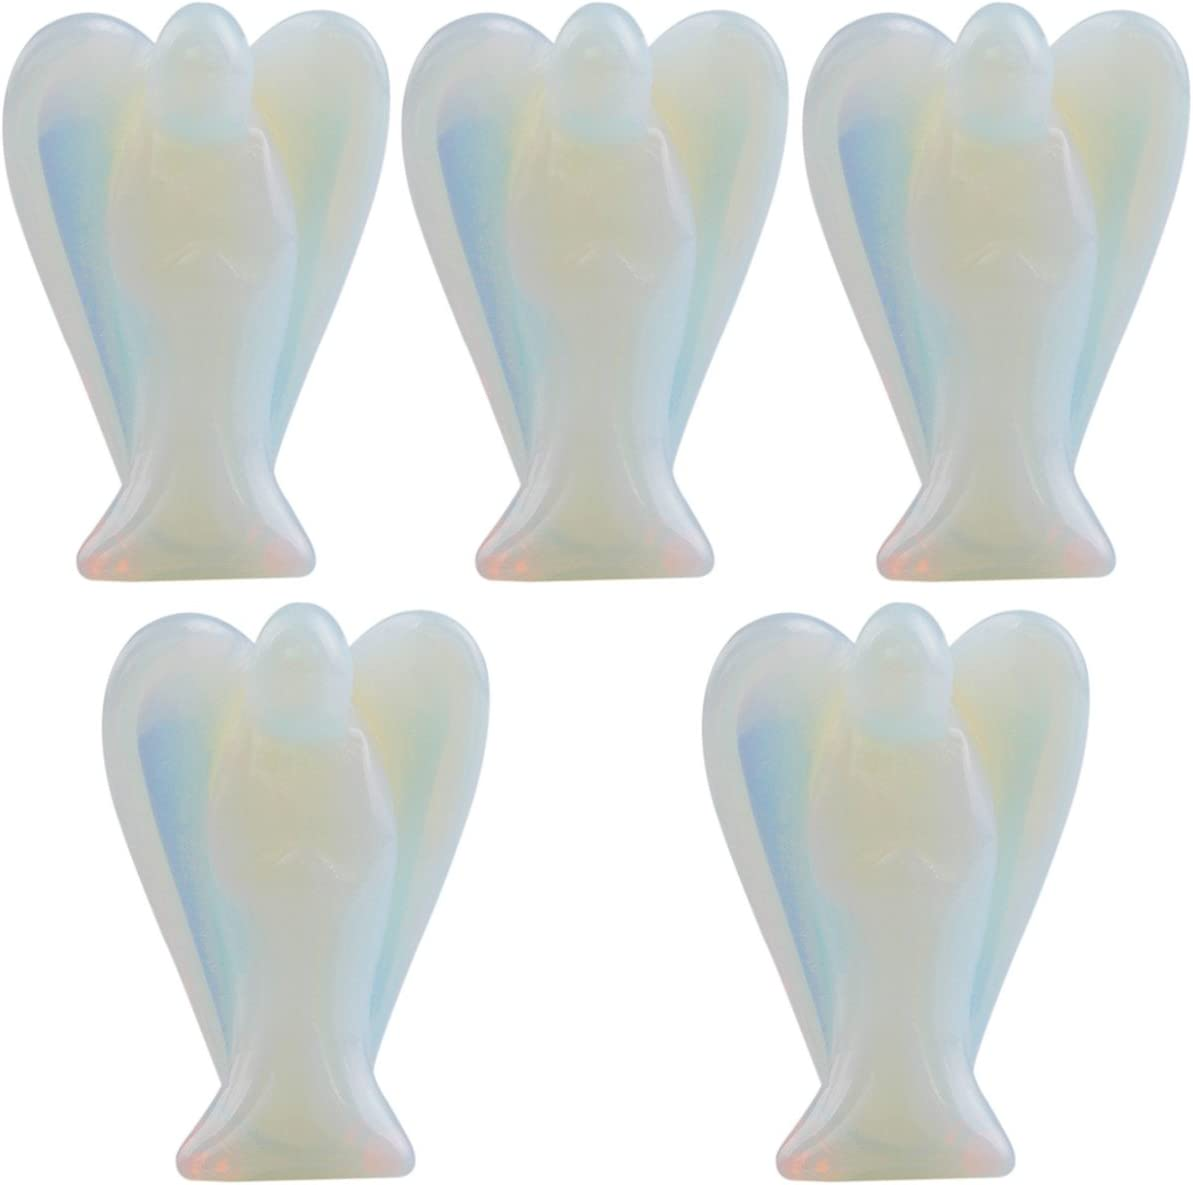 mookaitedecor Guardian Angel Figurines Set of 5,Crystals Gemstone Carved Mini Statue for Love,Peace & Healing 1.5 inch